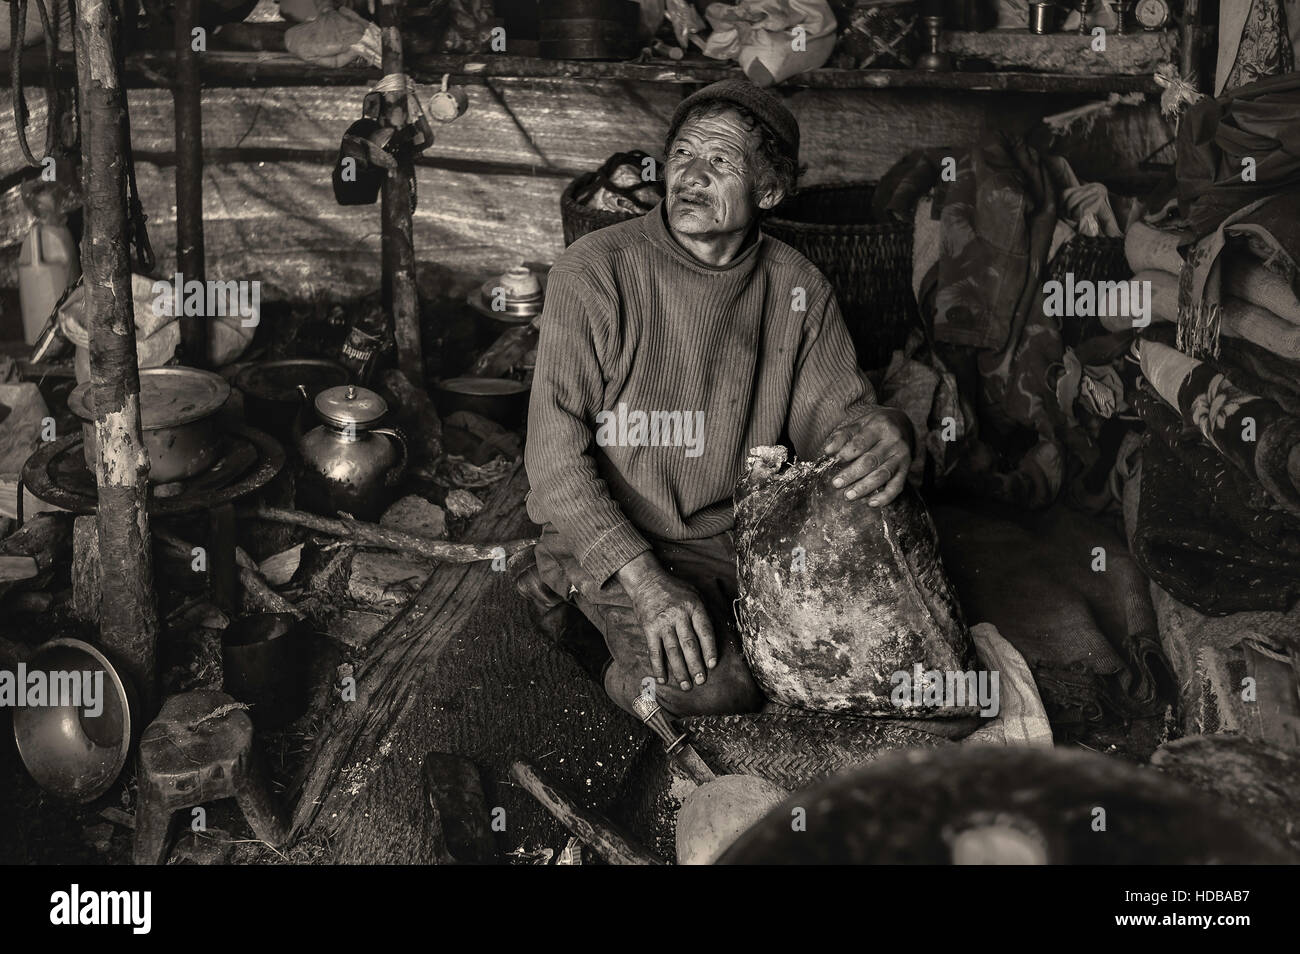 Man from a Brokpa nomad group  packs cheese in animal lining to barter locally near Dirang, Arunachal Pradesh, India. - Stock Image